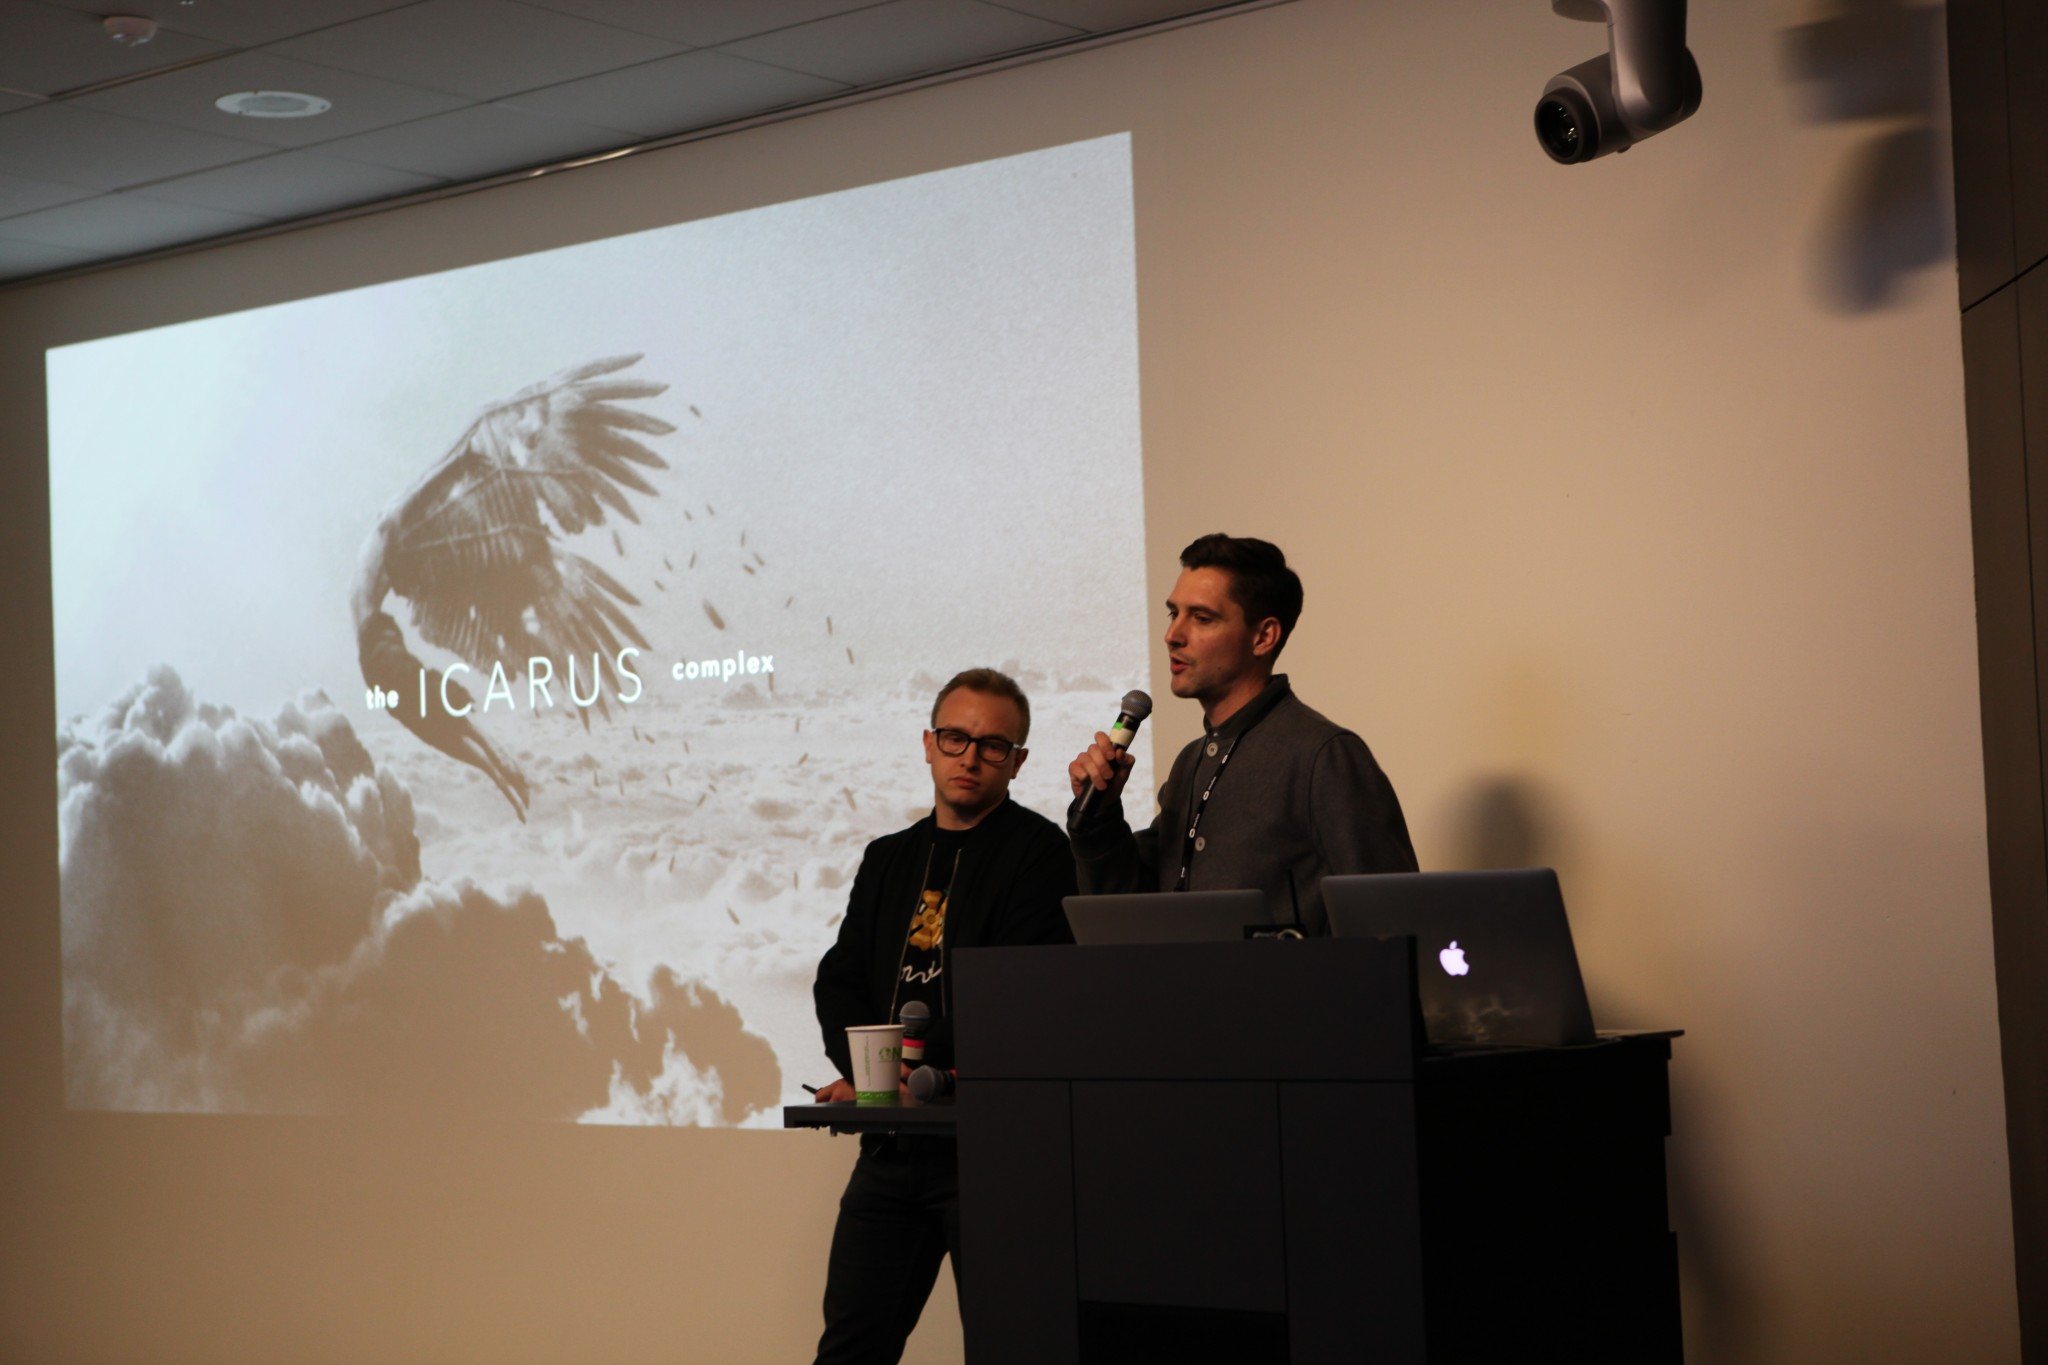 """The Icarus team discusses their concept of the """"Icarus Complex"""""""